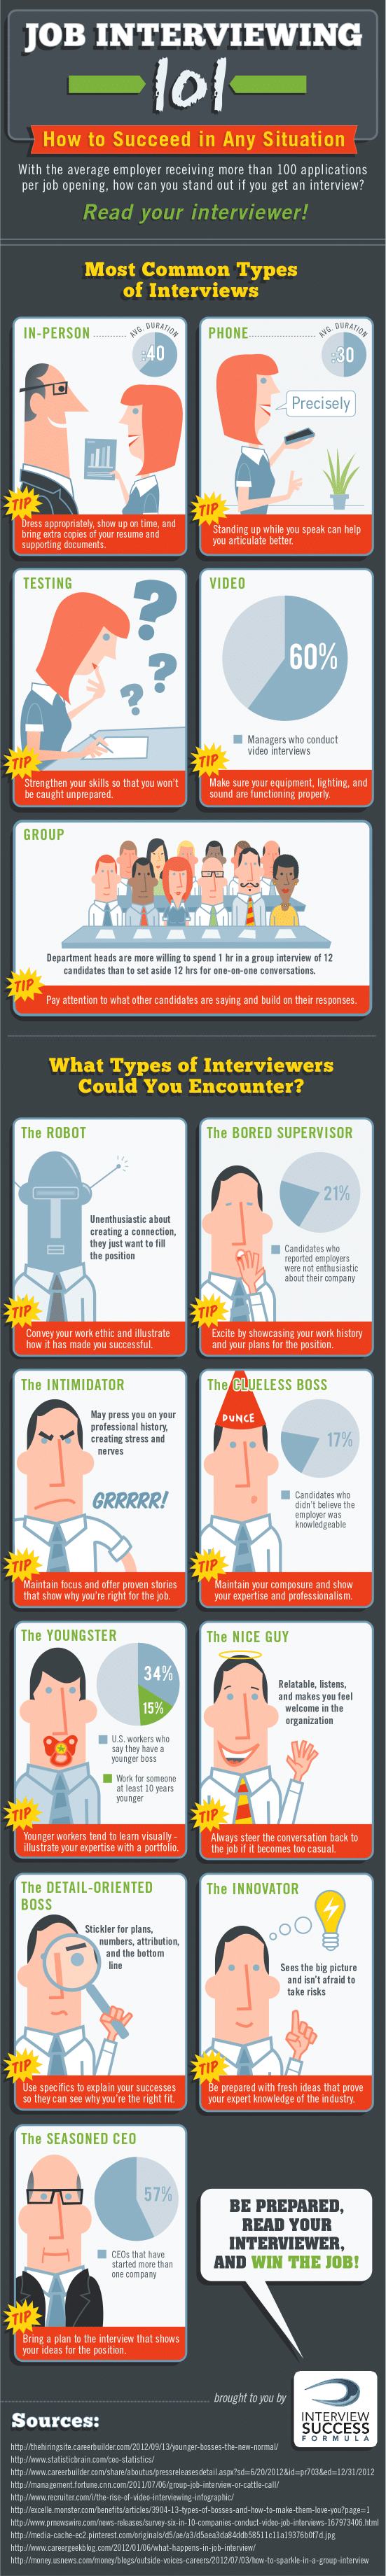 14 job interview tips that will get you the job infographic 14 job interview tips to help you score the job